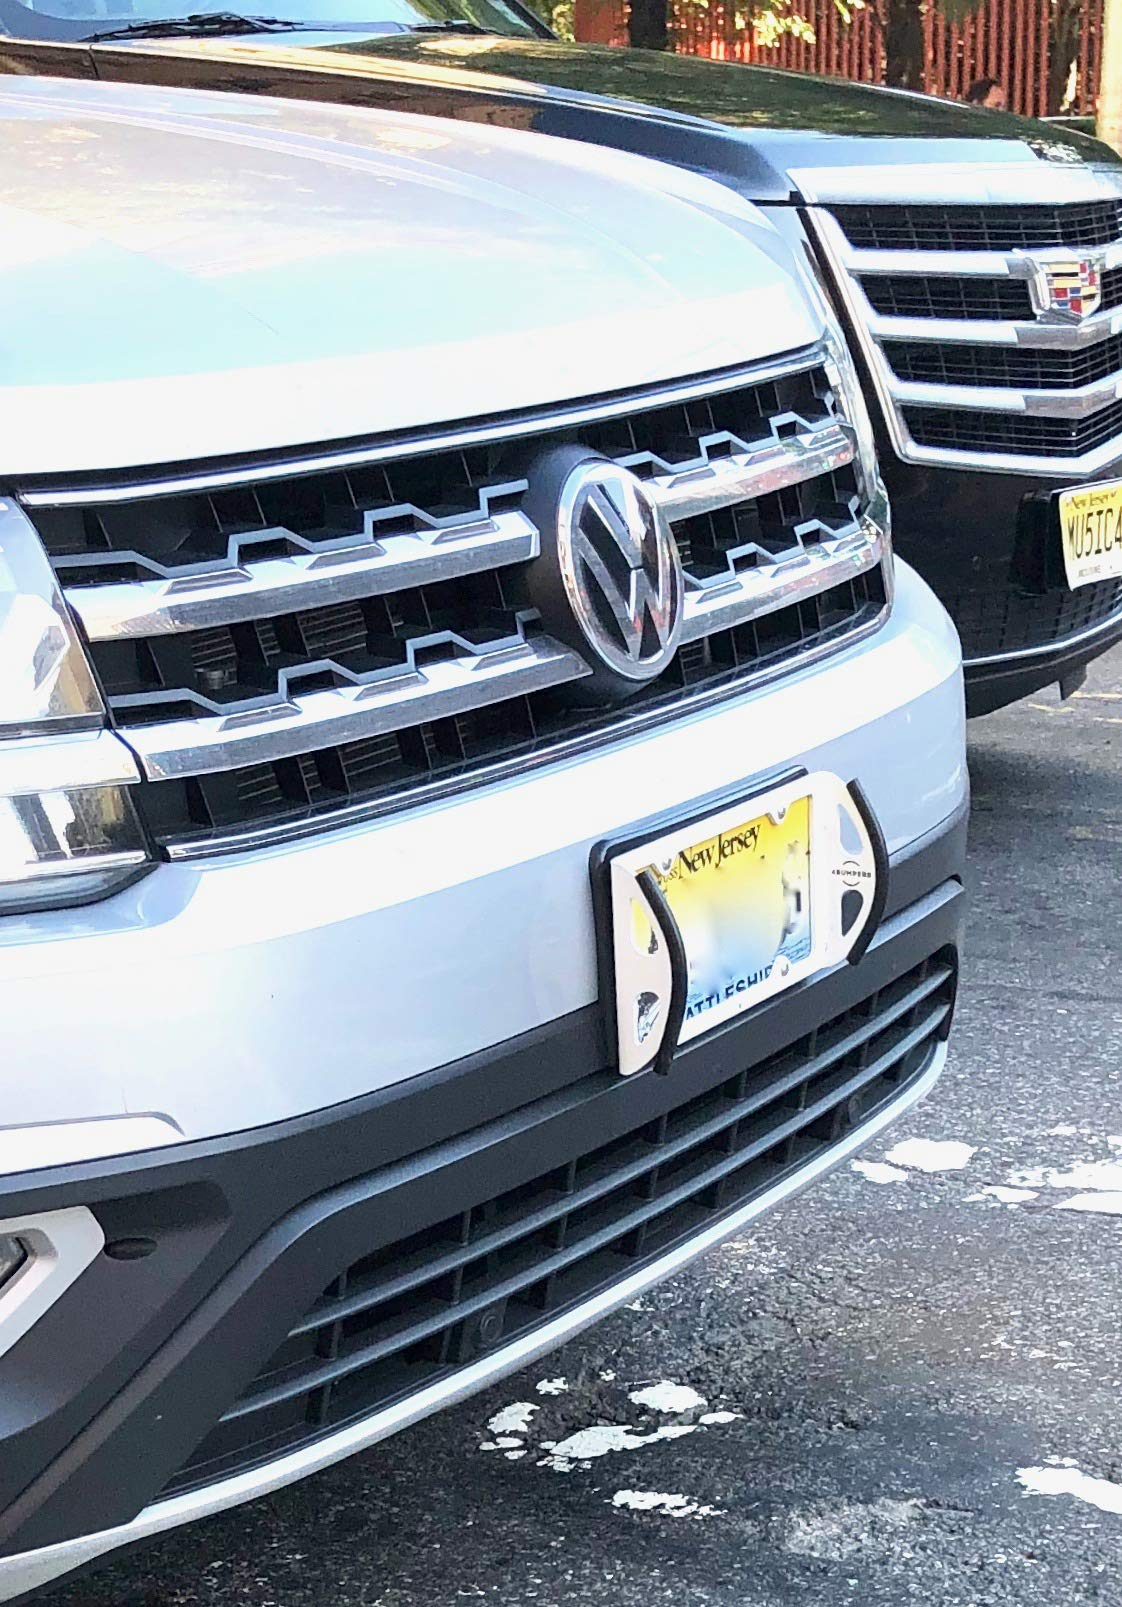 4Bumpers® Duo - The Best Solid Steel License Plate Frame Bumper Protector (Limited Edition White) by 4Bumpers® (Image #3)